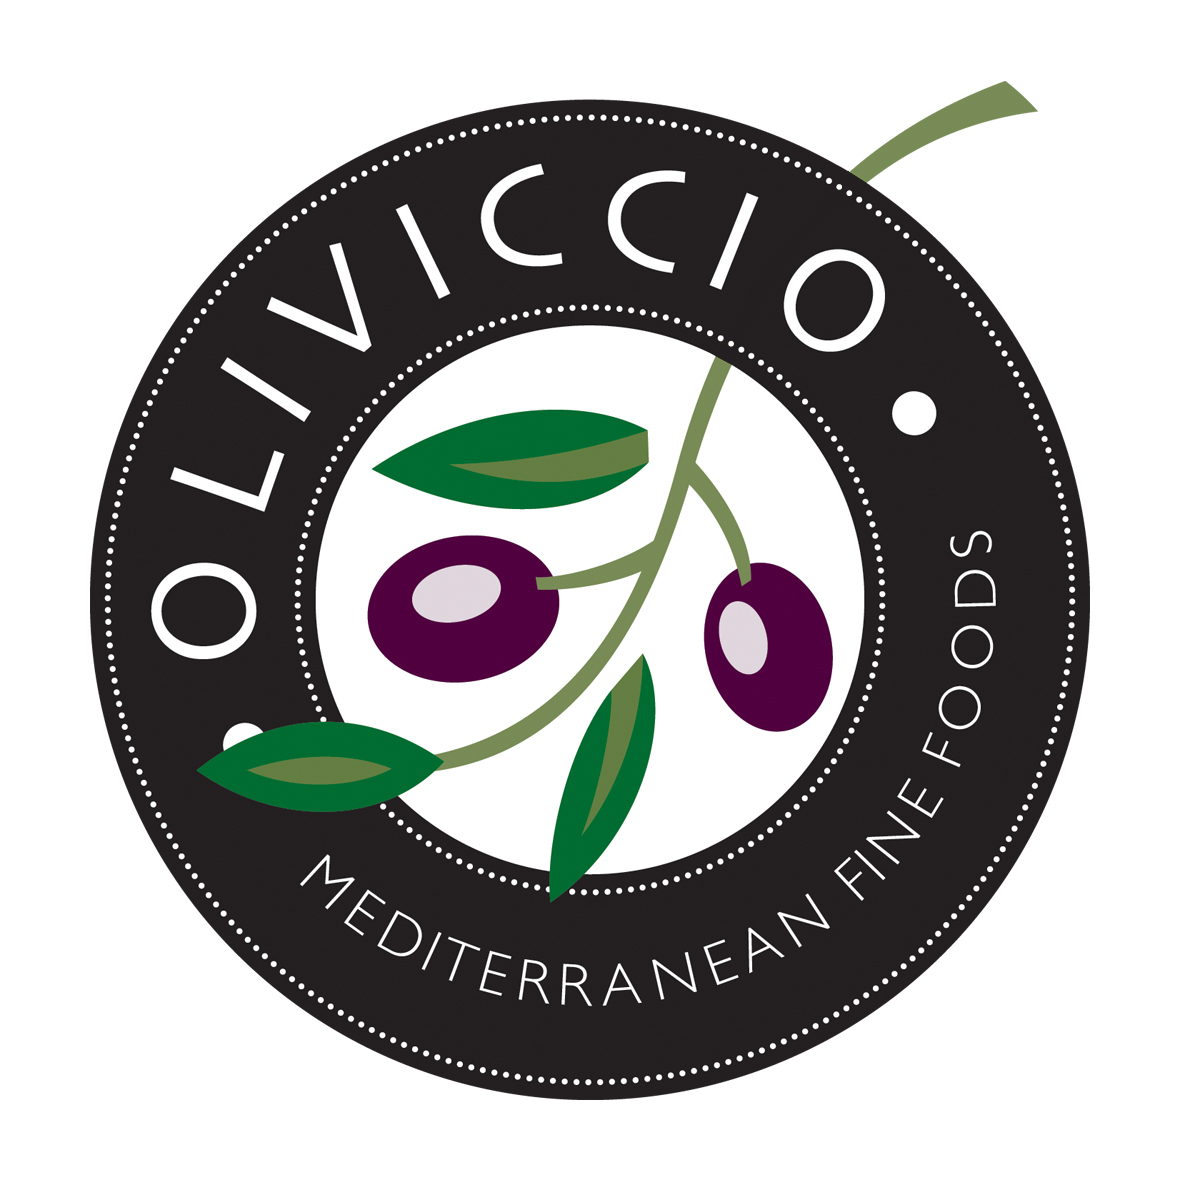 OLIVICCIO LTD